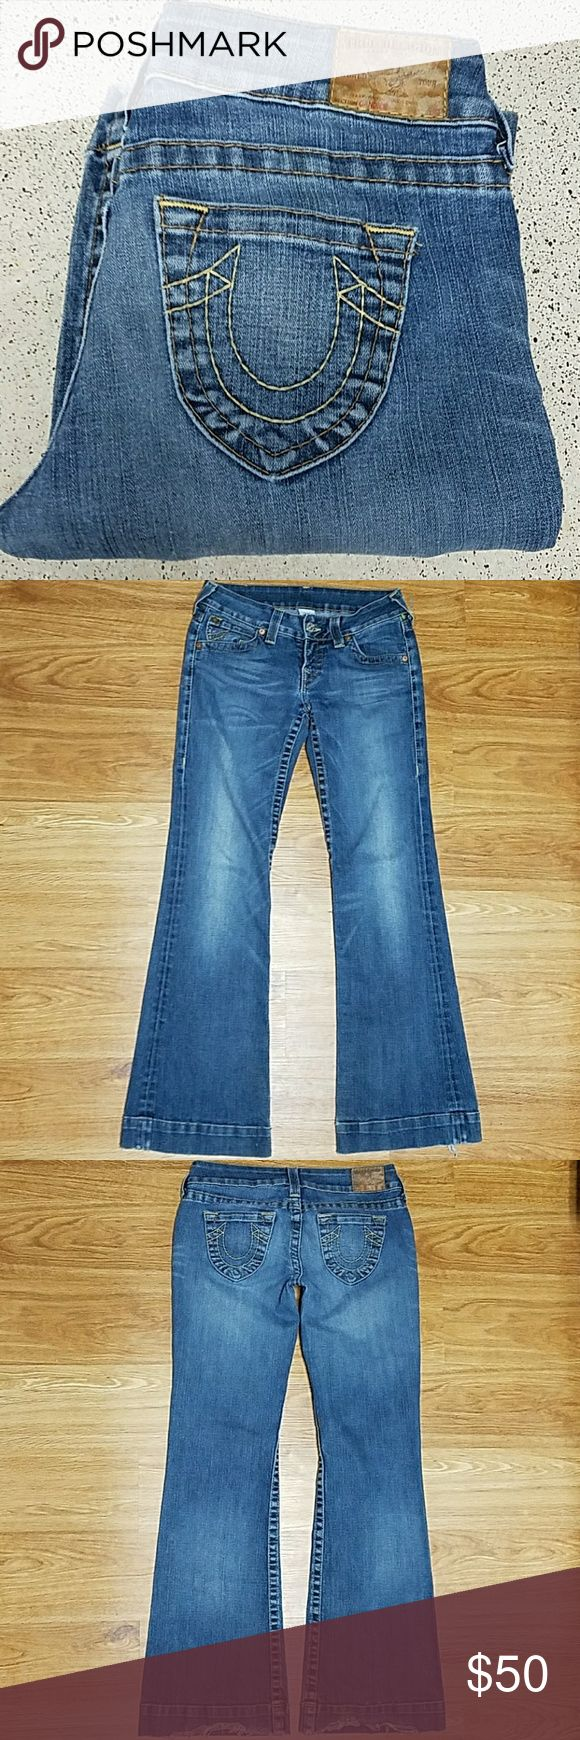 True Religion True Religion Jeans  (Rescude/Thrifted/preloved) 1-item Gender-ladys/girls Size-28 Inseam-32inch Back rise-12inch +1/2inch Style-CANDICE SEAT-34 (sizes may very depending on style and Brands) 88% Cotton  10% polyester  2% spandex  Rn#112790 Ca#30427 STAYTRUE! Soft but thick beutifull fabric!As is.No returns.Yes! Real BUDA'S!(some random usage spots,distressing on cuffs)(some great random distressing)nonsmoke,nonpet, stored in dark dry storage excellent quality.Buy with…